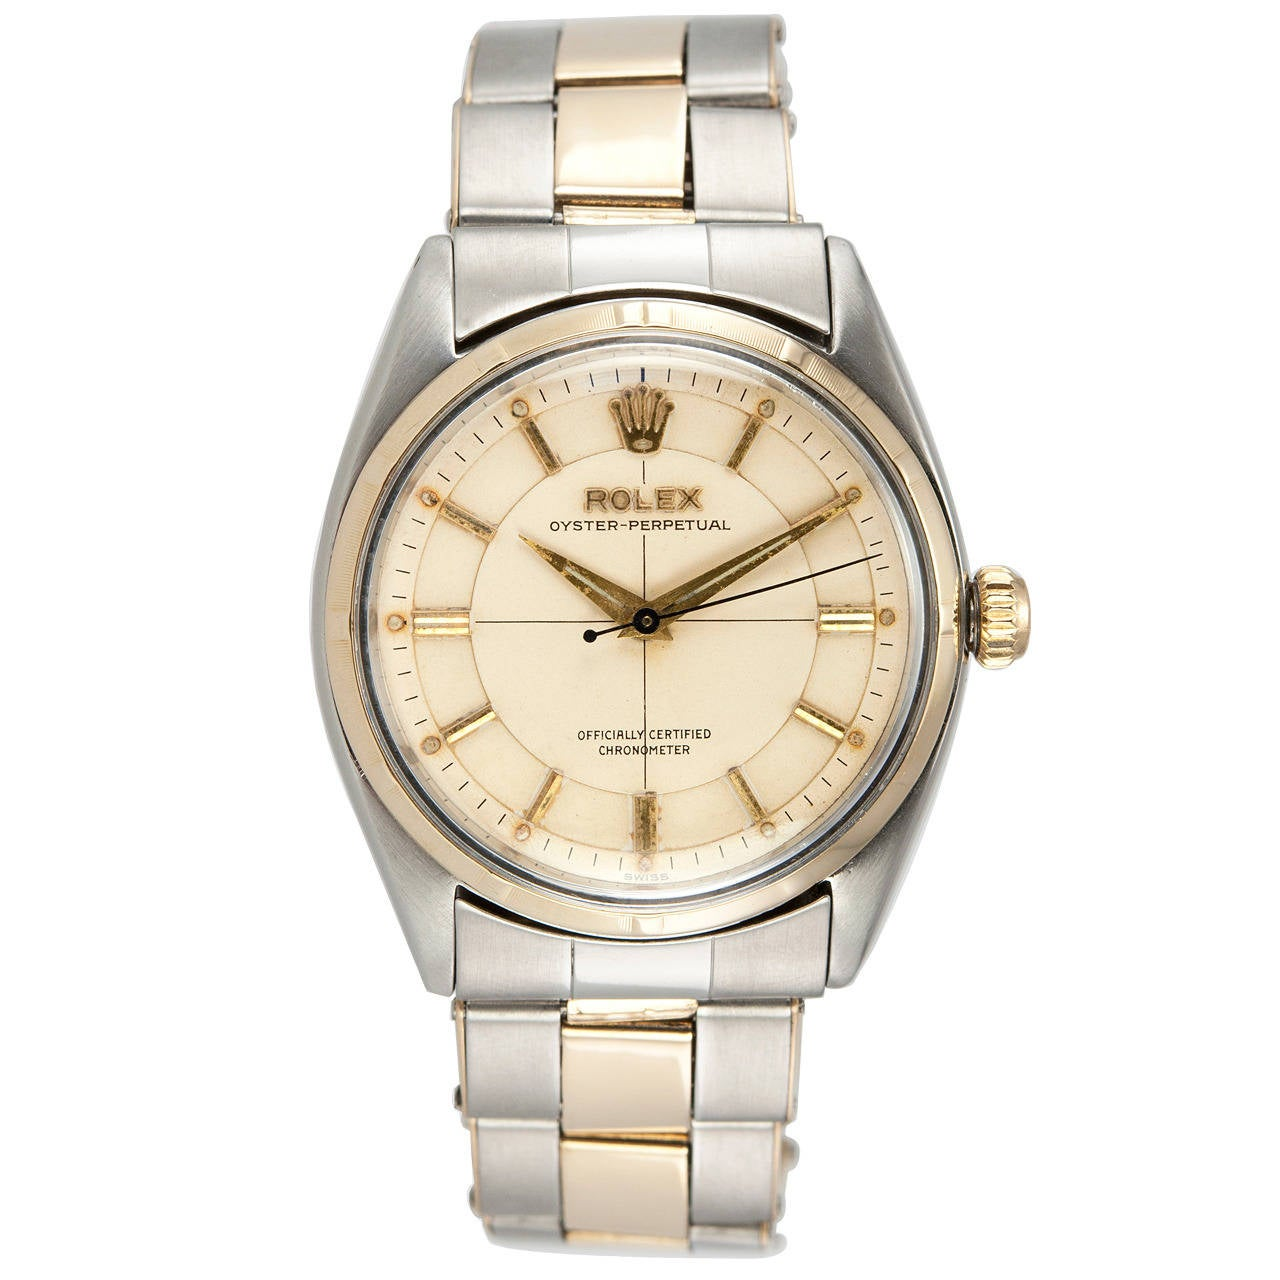 Rolex Yellow Gold Stainless Steel Oyster Perpetual Wristwatch Ref 6565